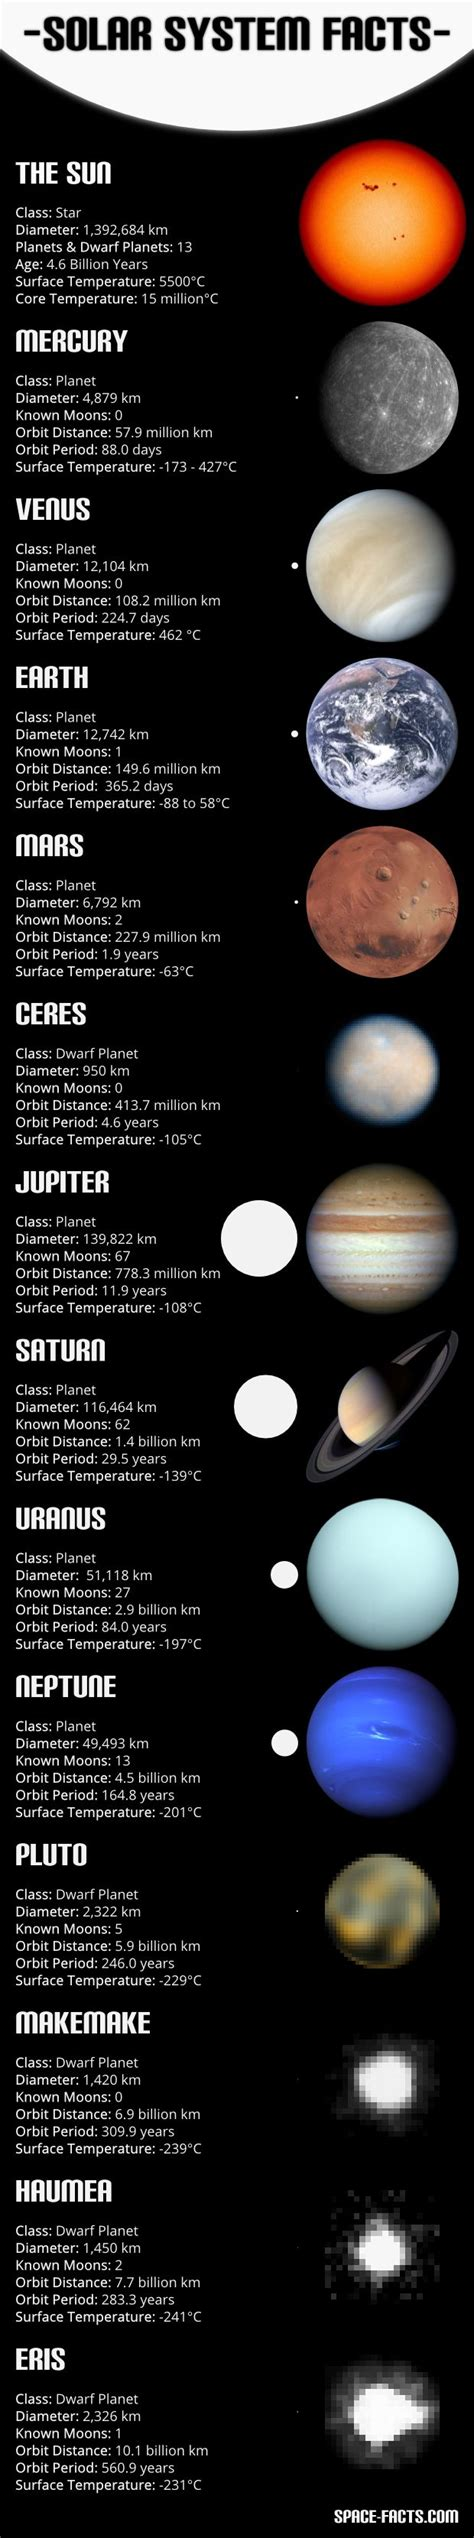 8 Facts On The Solar System by Solarsystem Facts The Solar System Consists Of The Sun